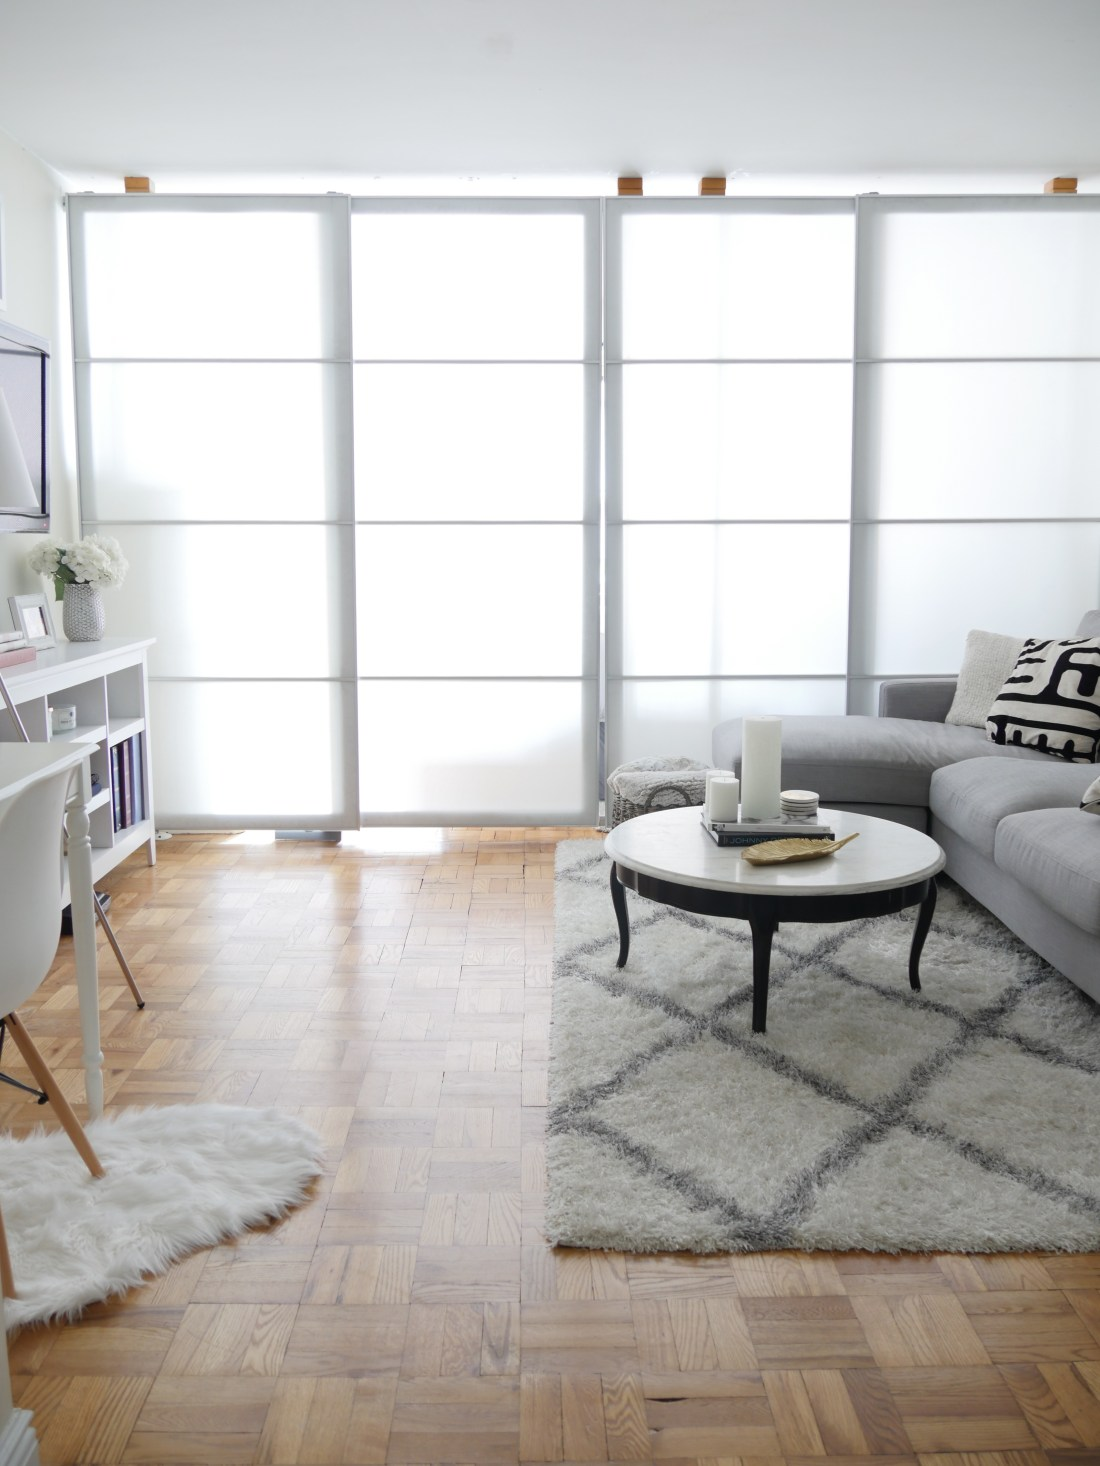 Live in a studio apartment and need to create a room divider? Need some studio apartment ideas? Learn how to here! #roomdivider #roomdividerideas #studioapartmentideas #tinystudioapartmentideas #studioapartmentdecorating #decoratingonabudget #smallapartmentideas